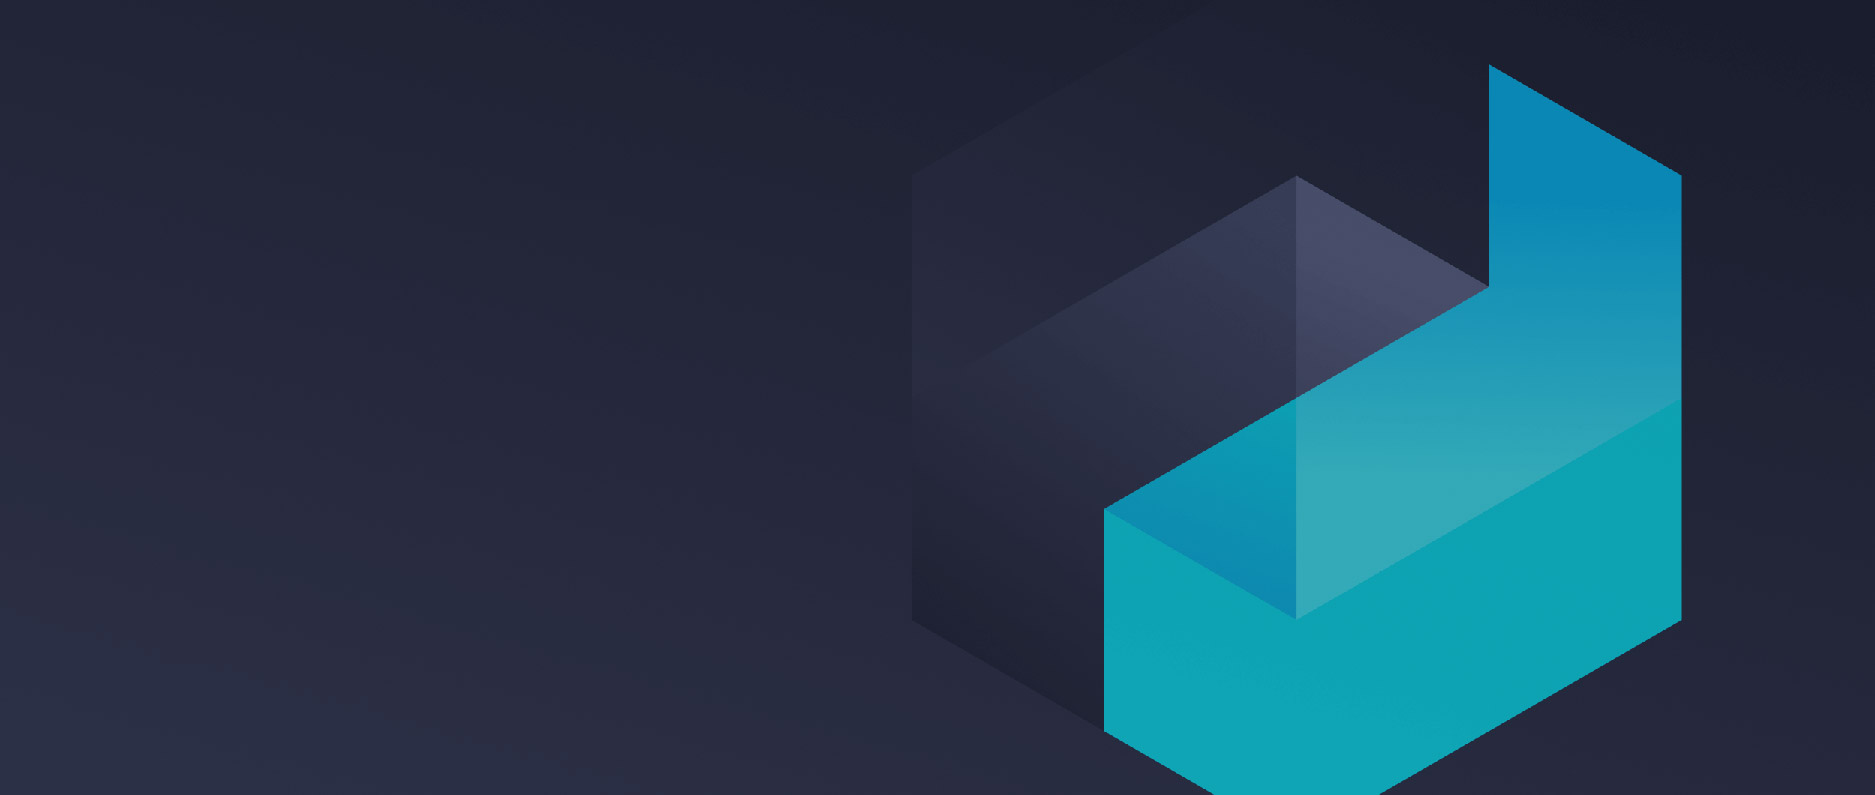 Introducing Aragon Connect